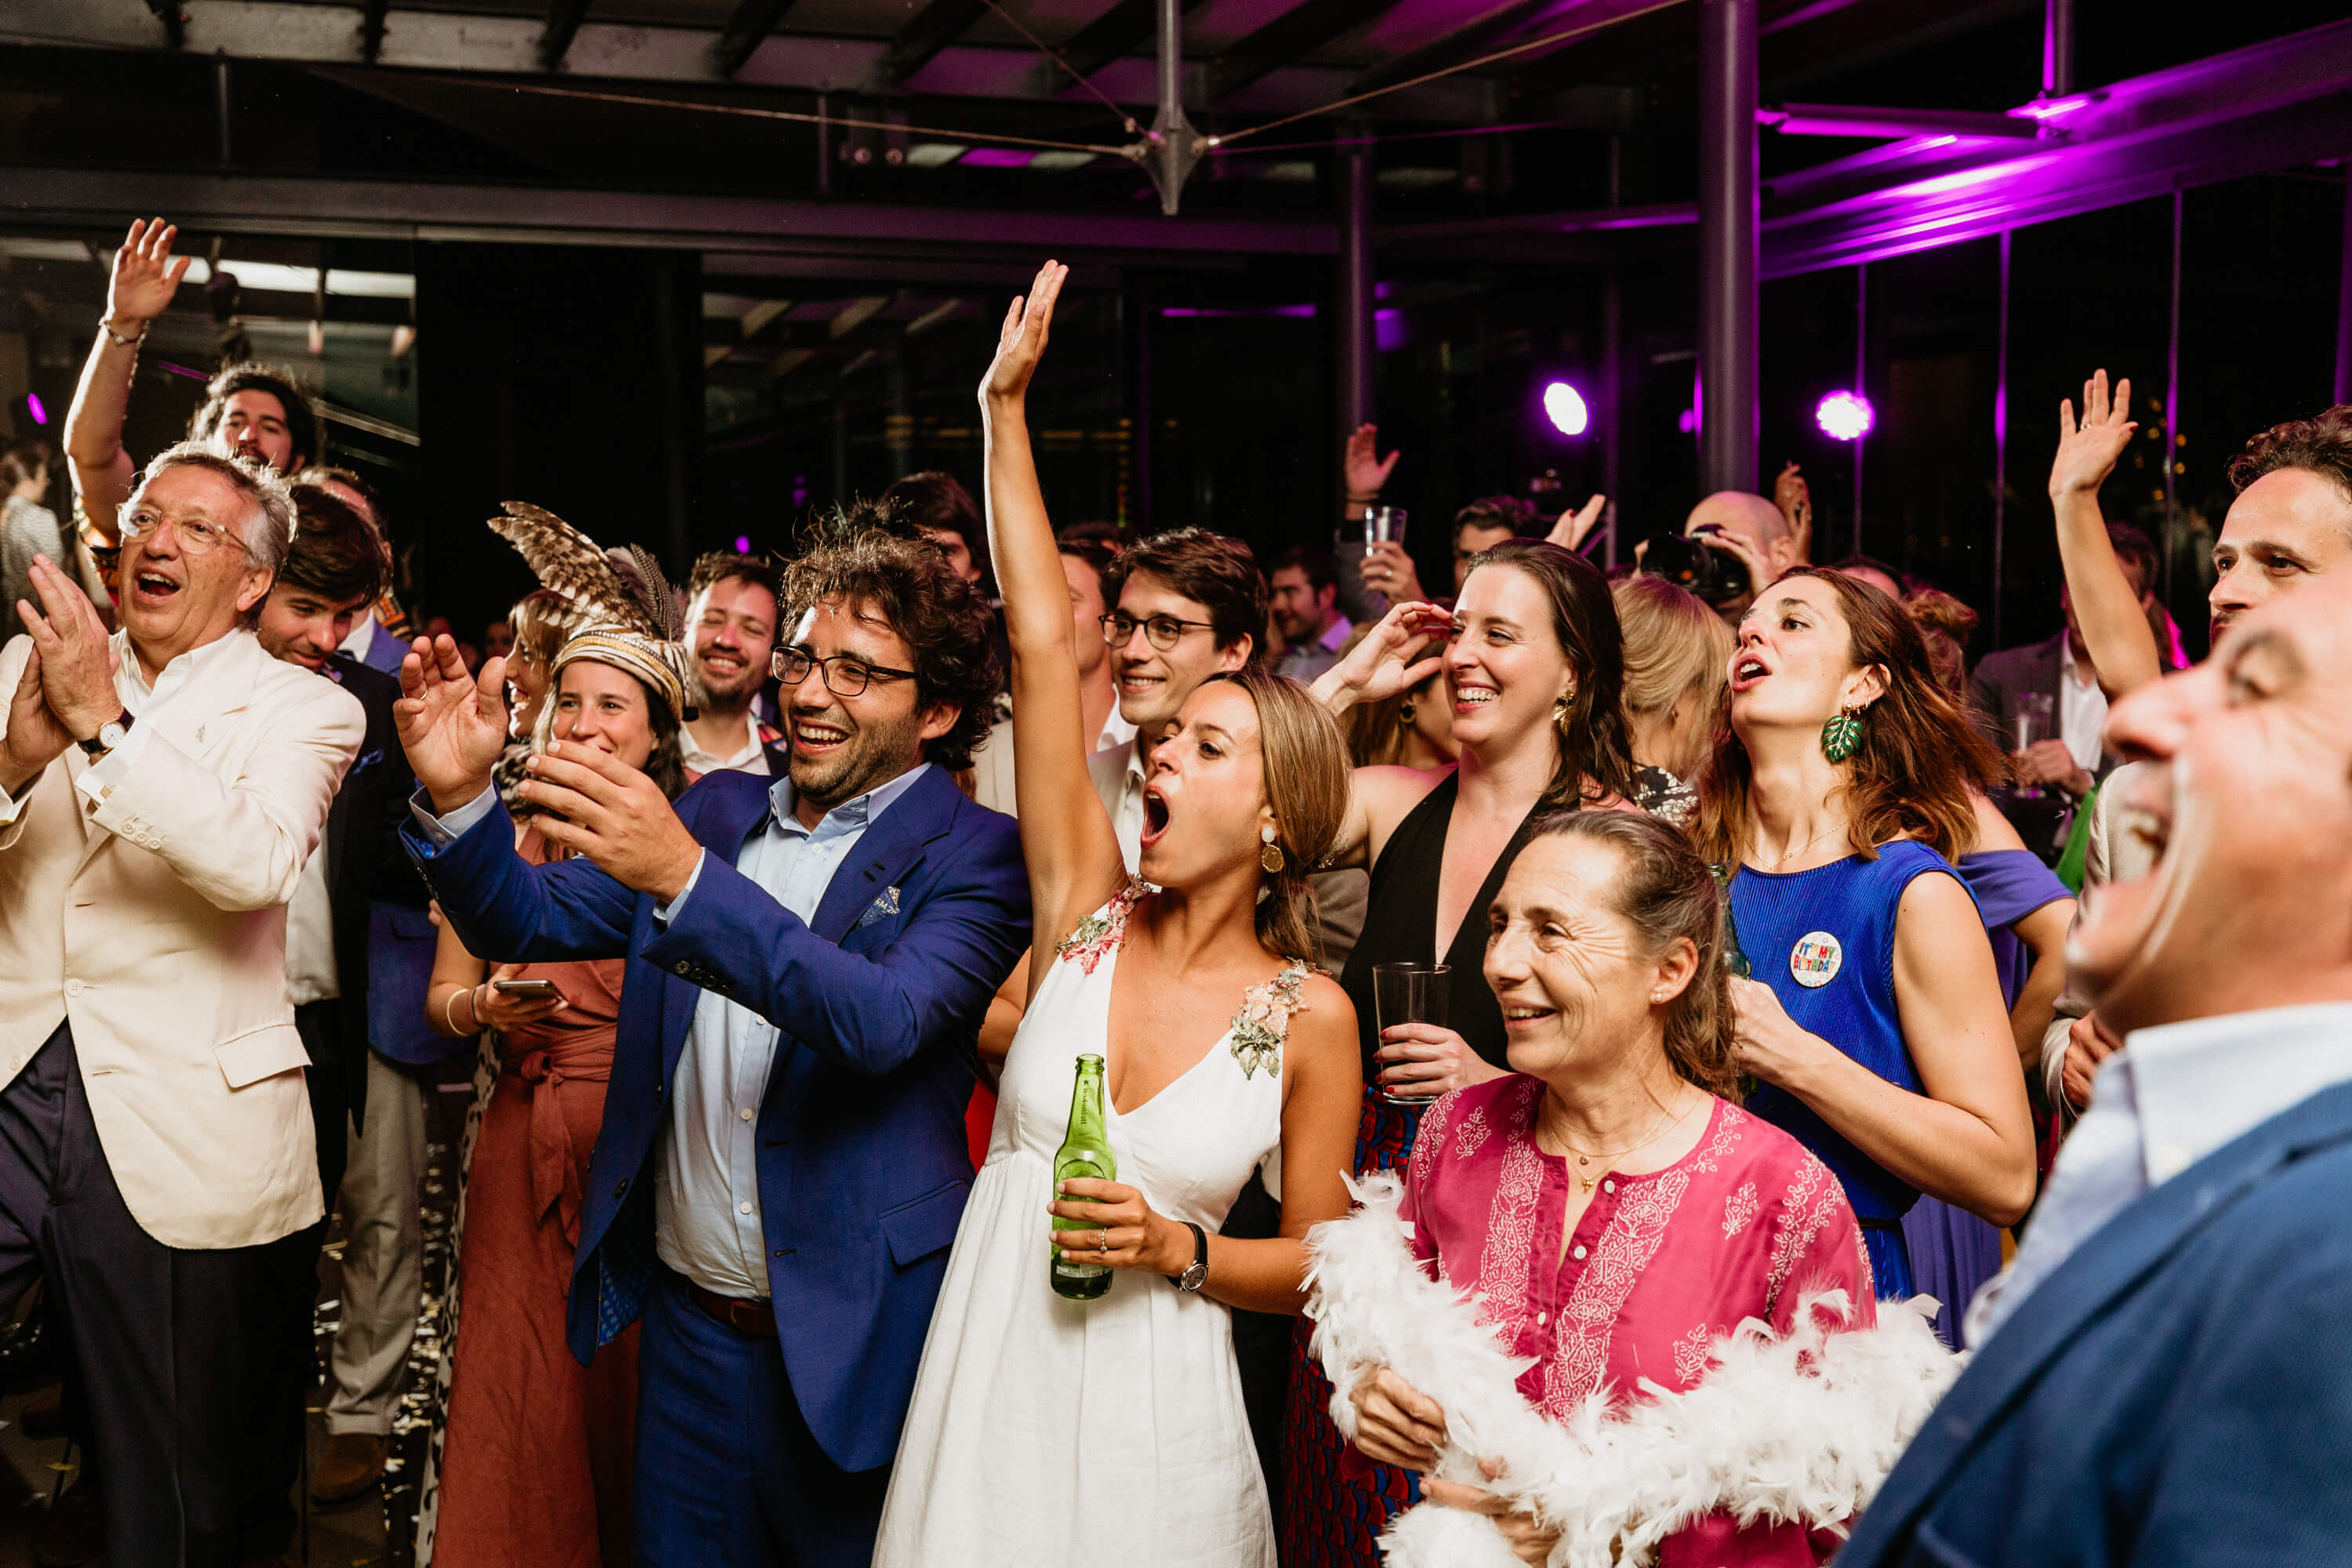 jubilant wedding party letting loose.